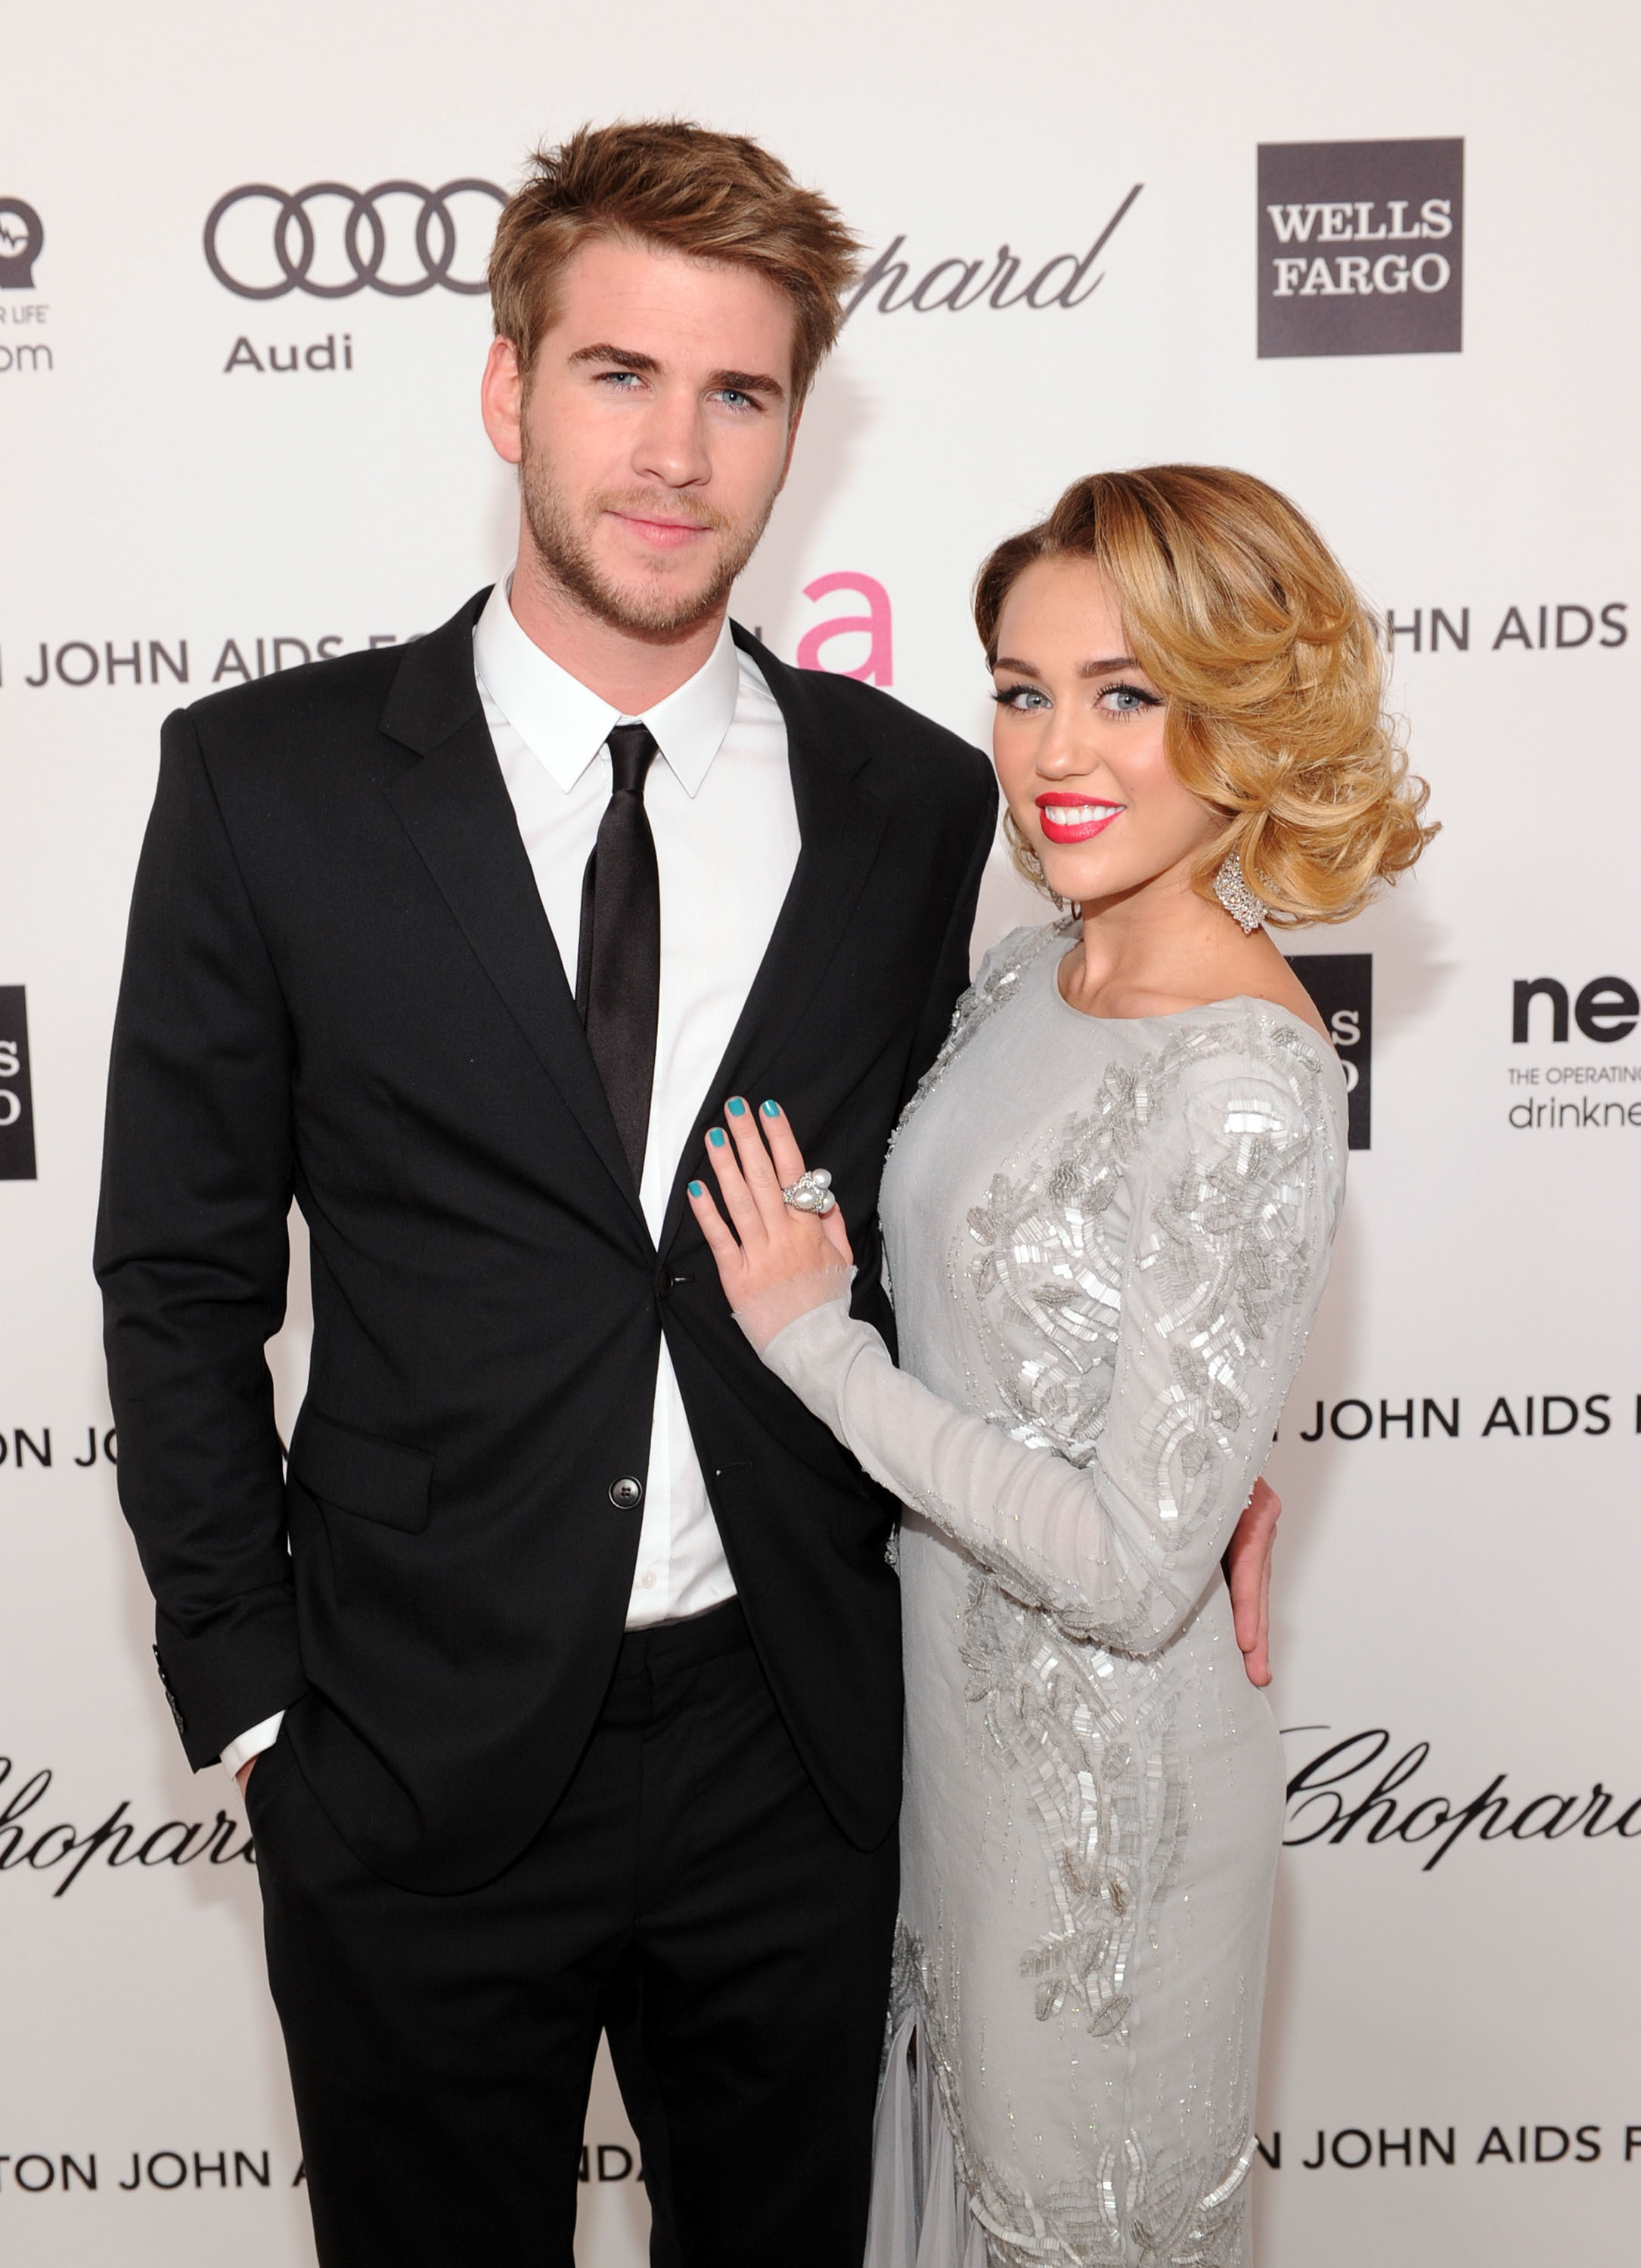 Miley Cyrus on Liam Hemsworth engagement